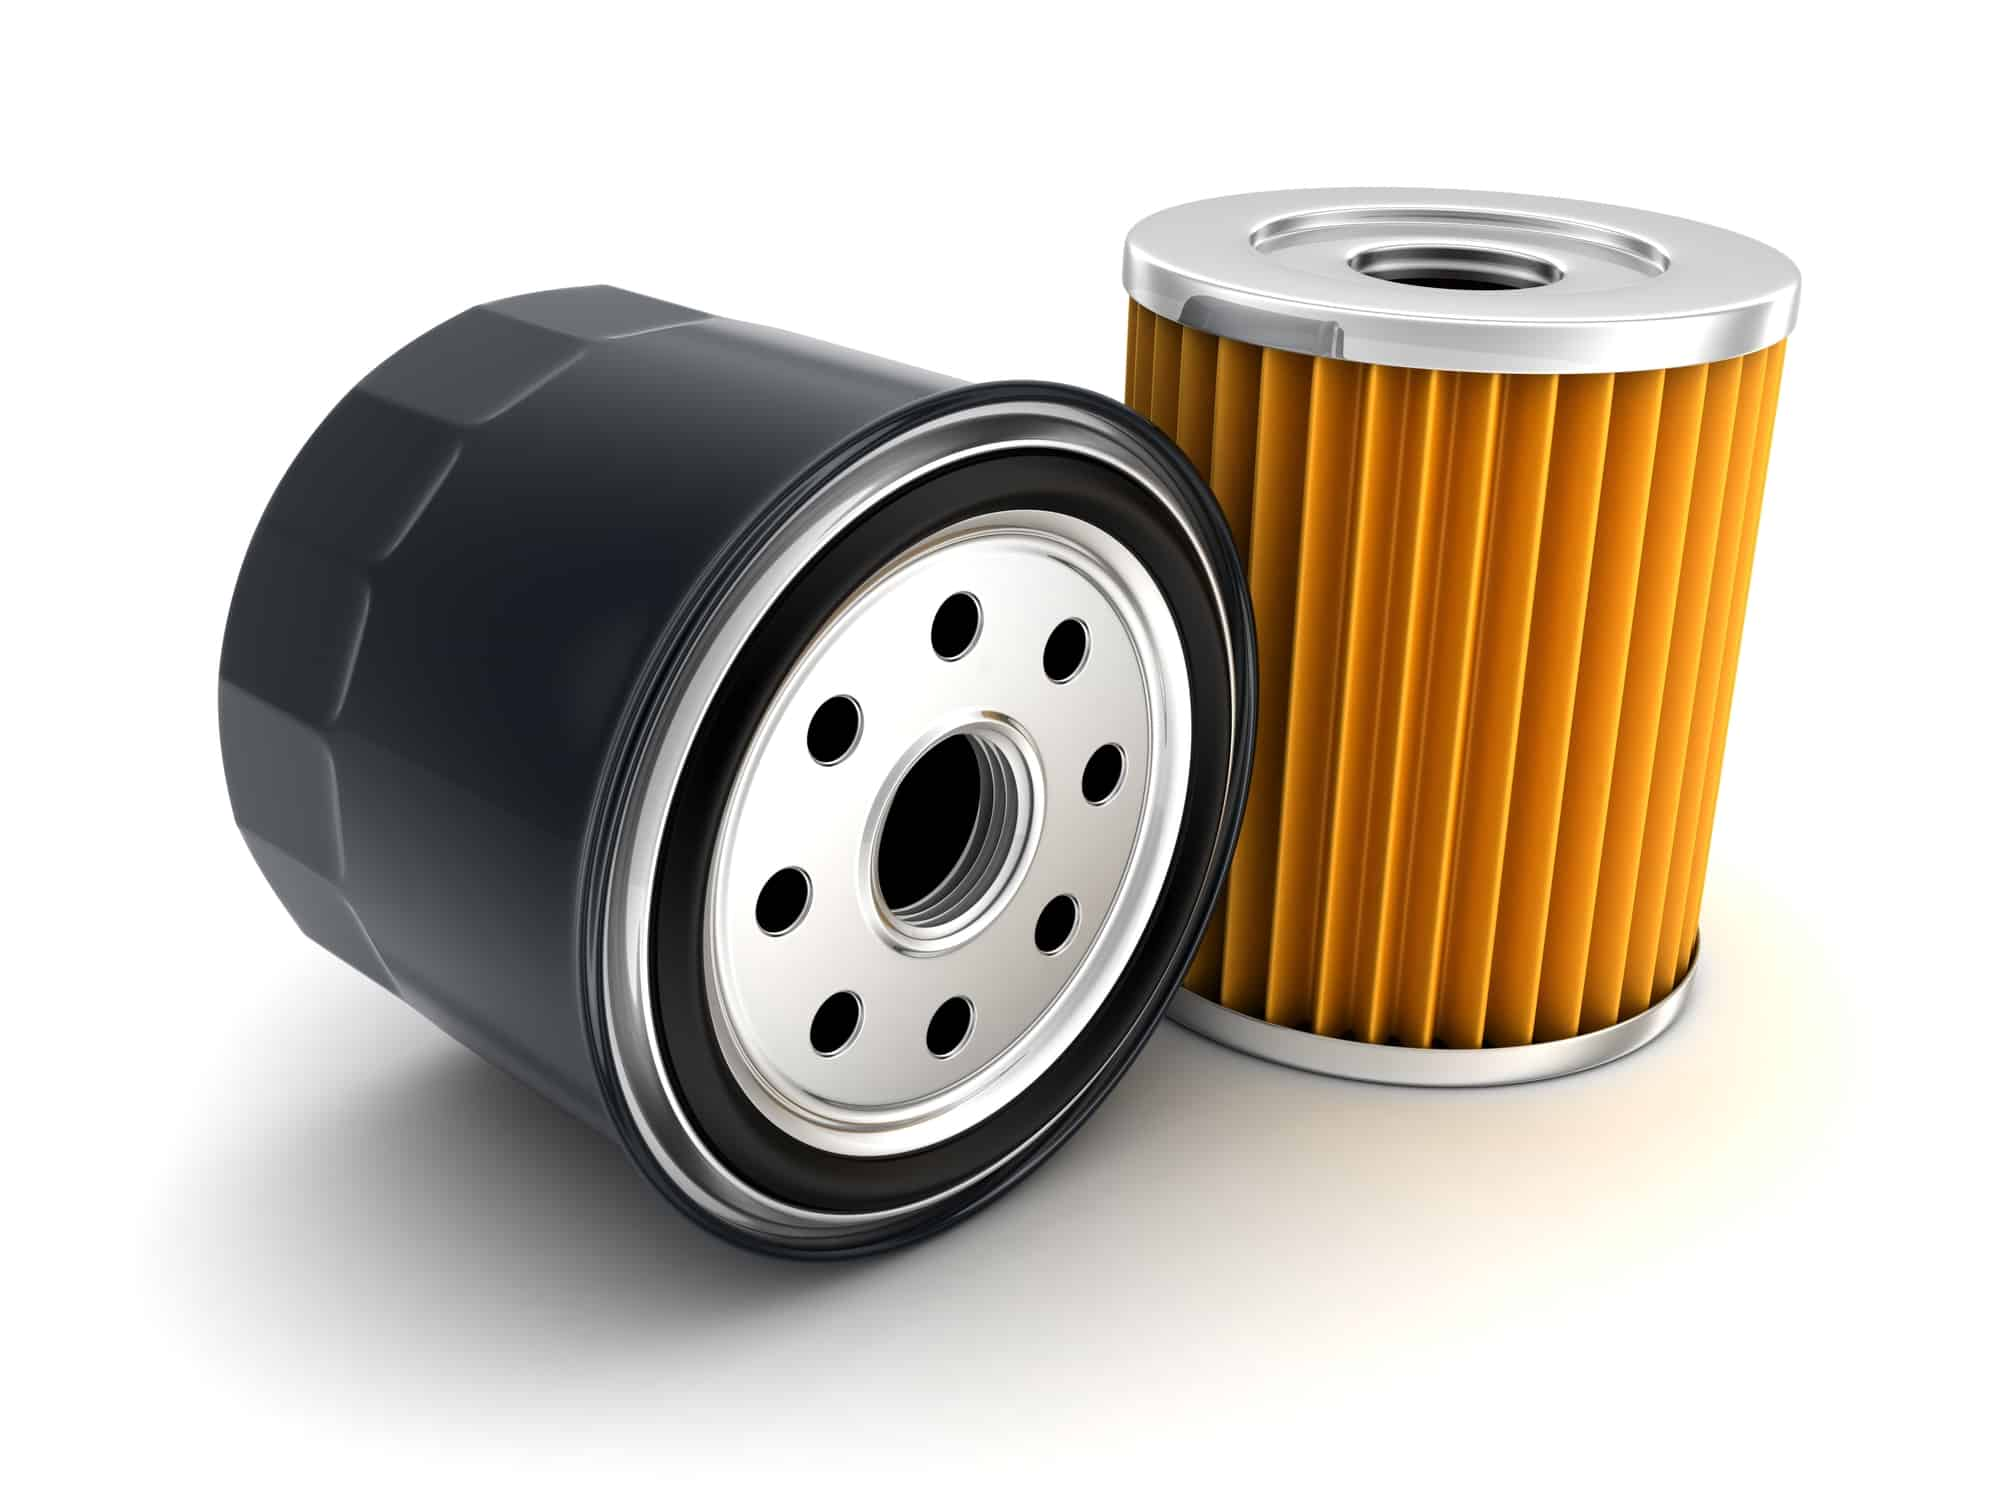 leaky oil filter